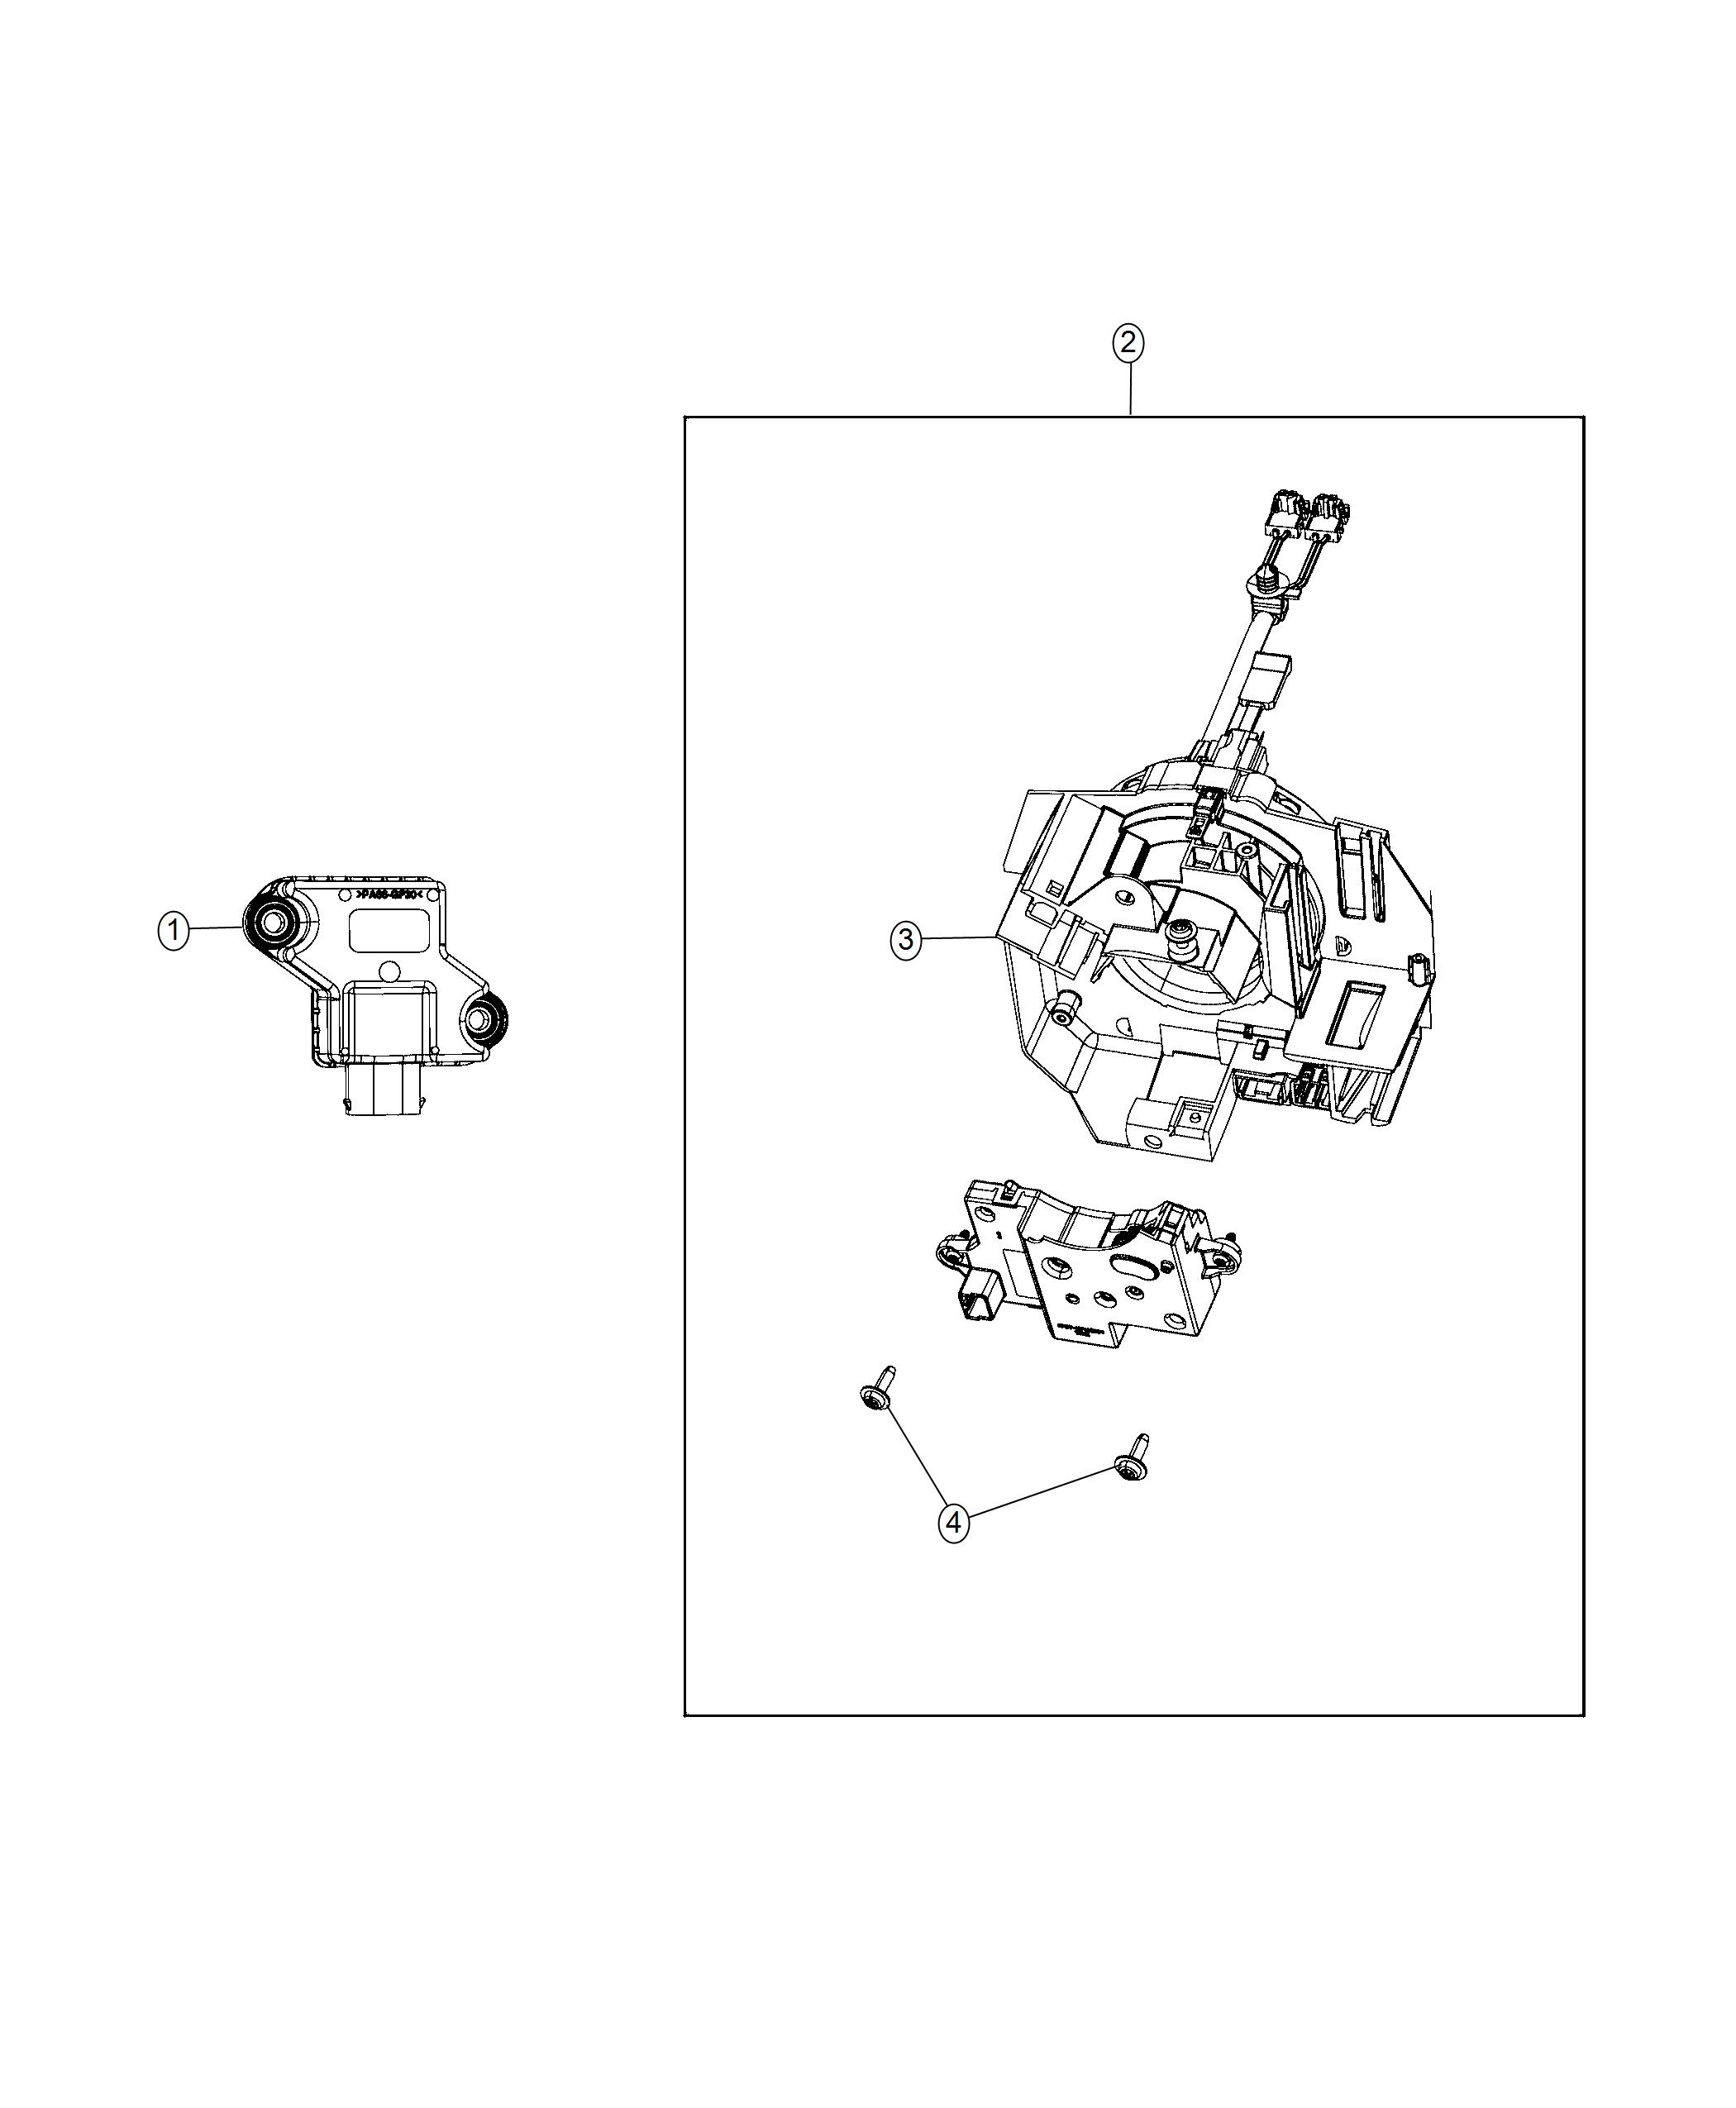 Dodge Ram 2500 Sensor. Dynamics. Used for: lateral